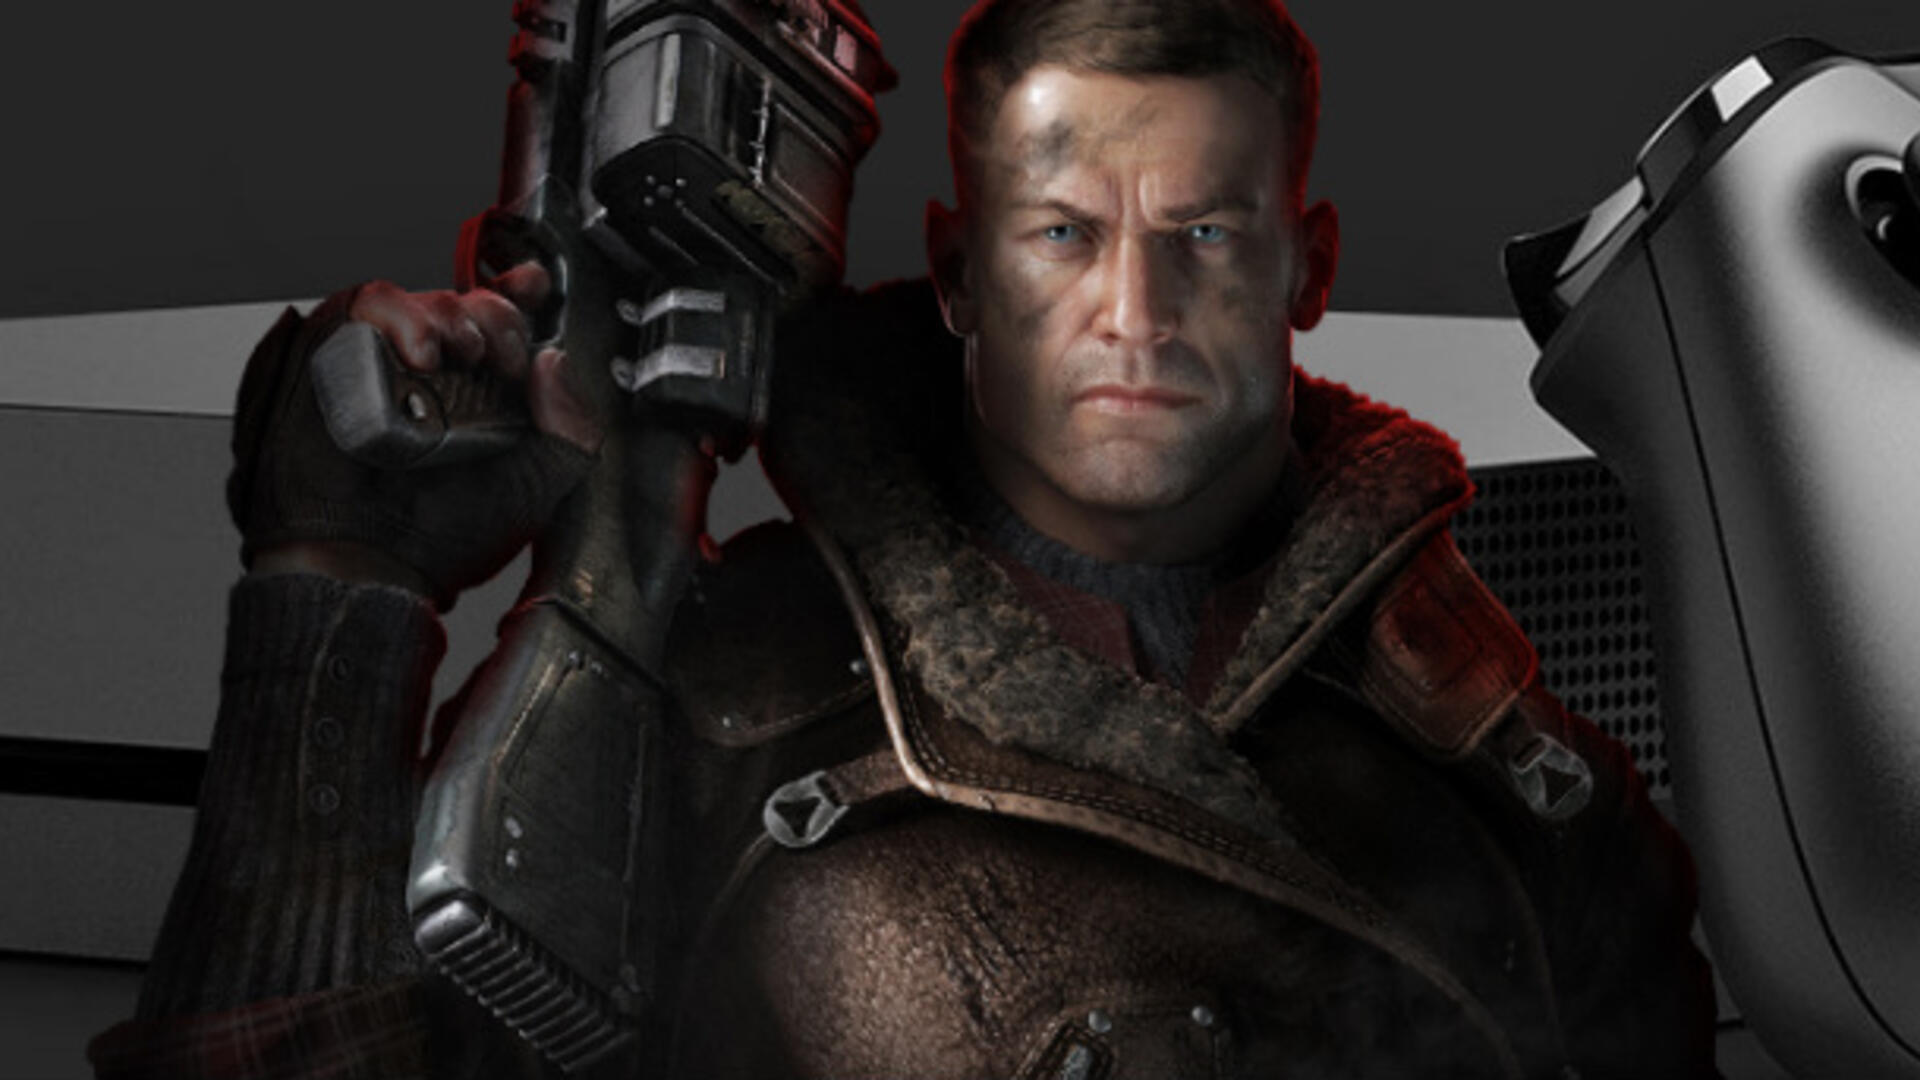 Xbox One X Enhancements For Wolfenstein 2, Fallout 4, and More Detailed